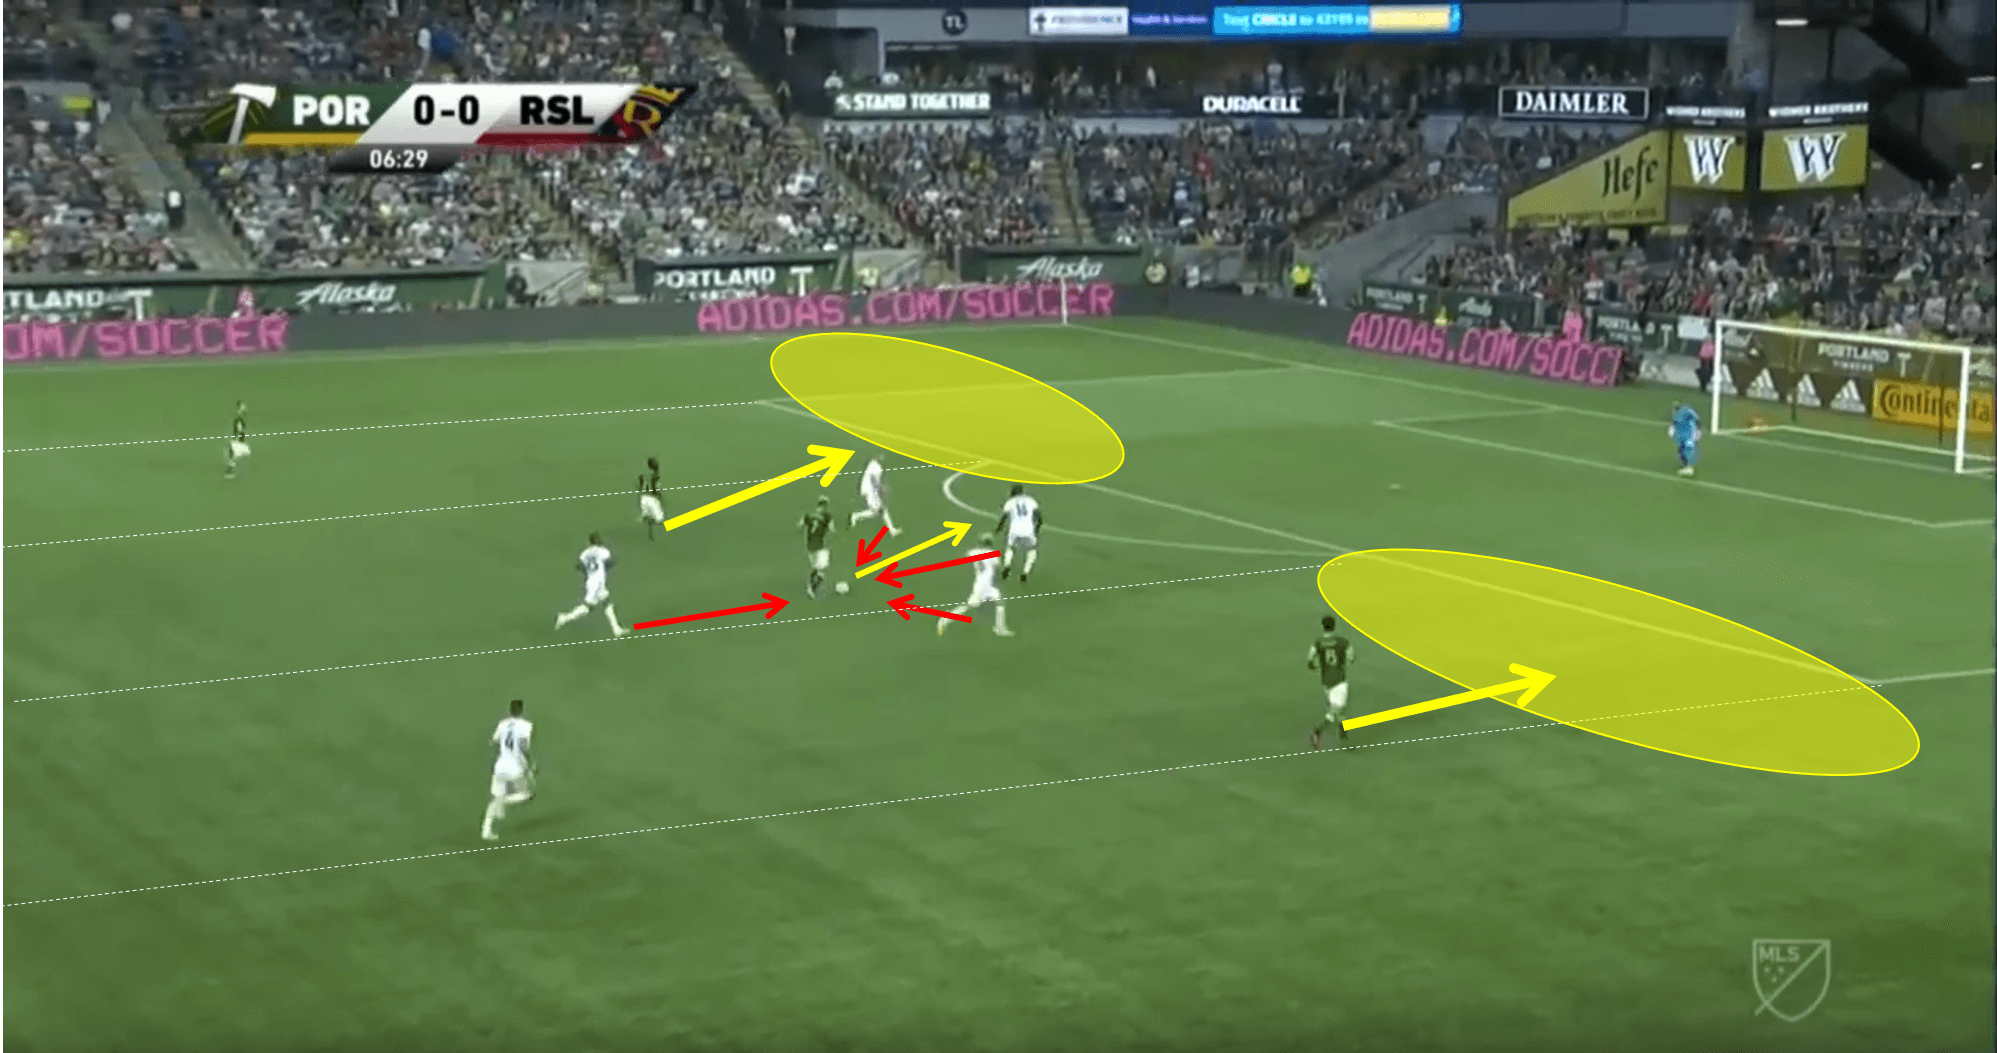 MLS 2019: Portland Timbers vs Real Salt Lake - Tactical Analysis Tacticsics